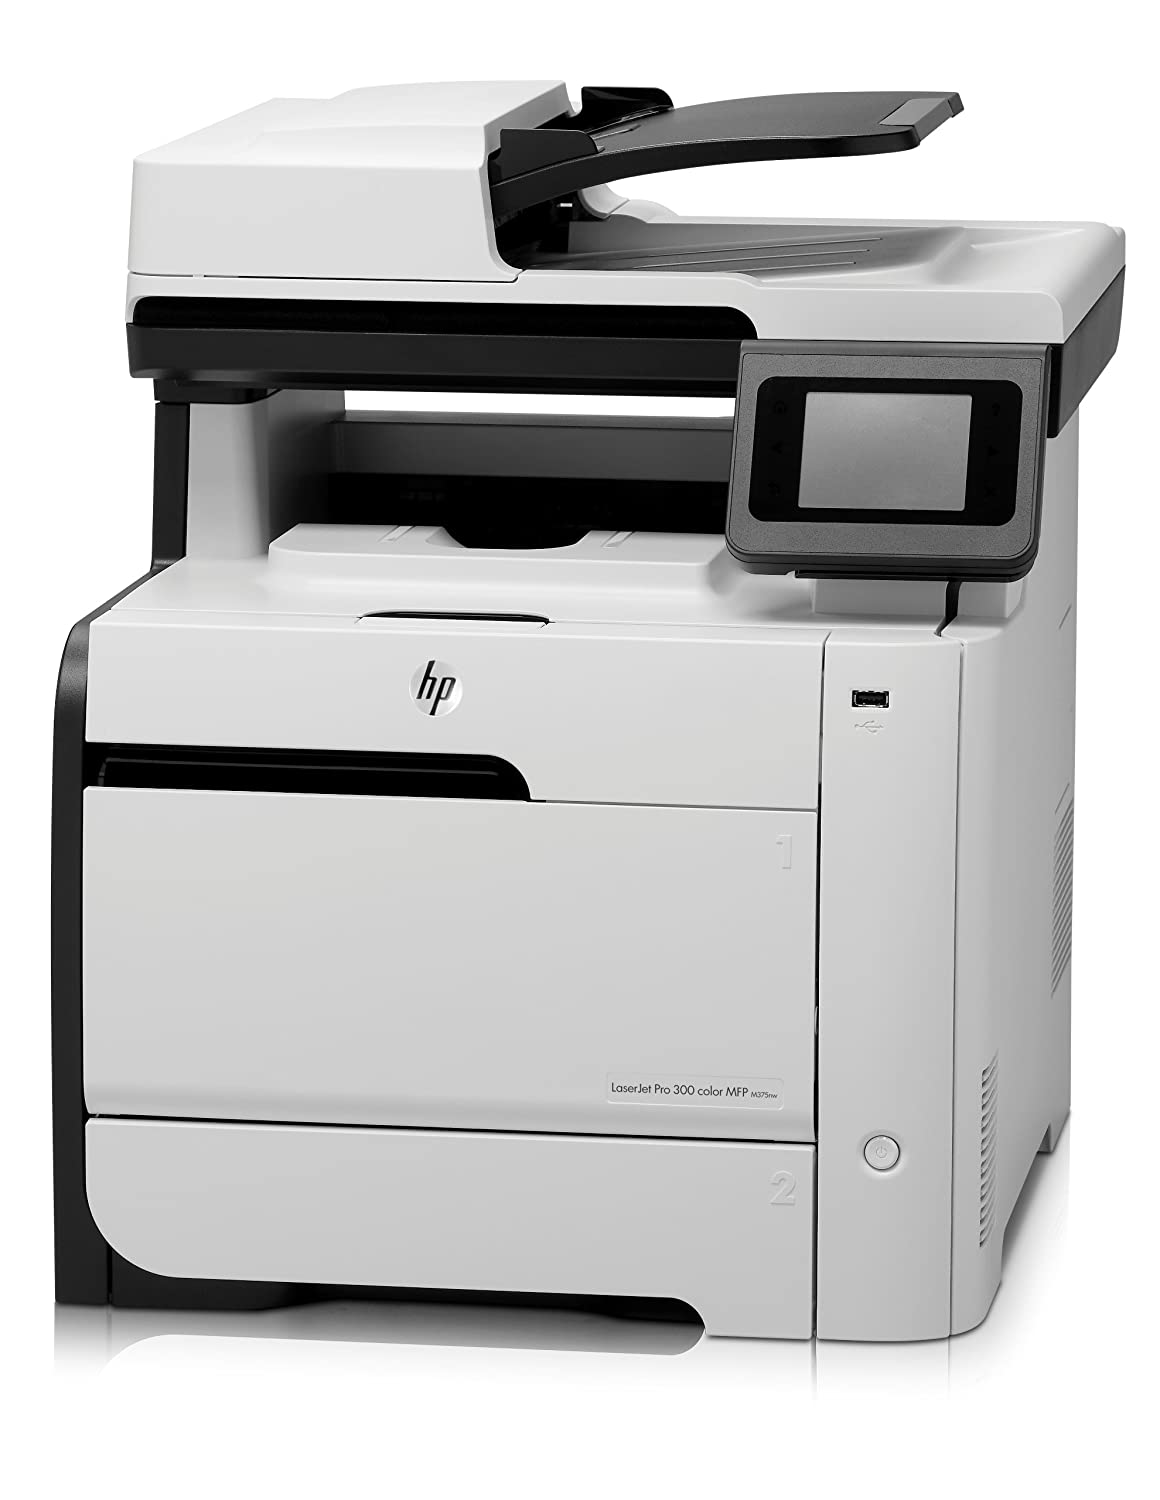 HP LASERJET M375 DRIVERS FOR WINDOWS VISTA